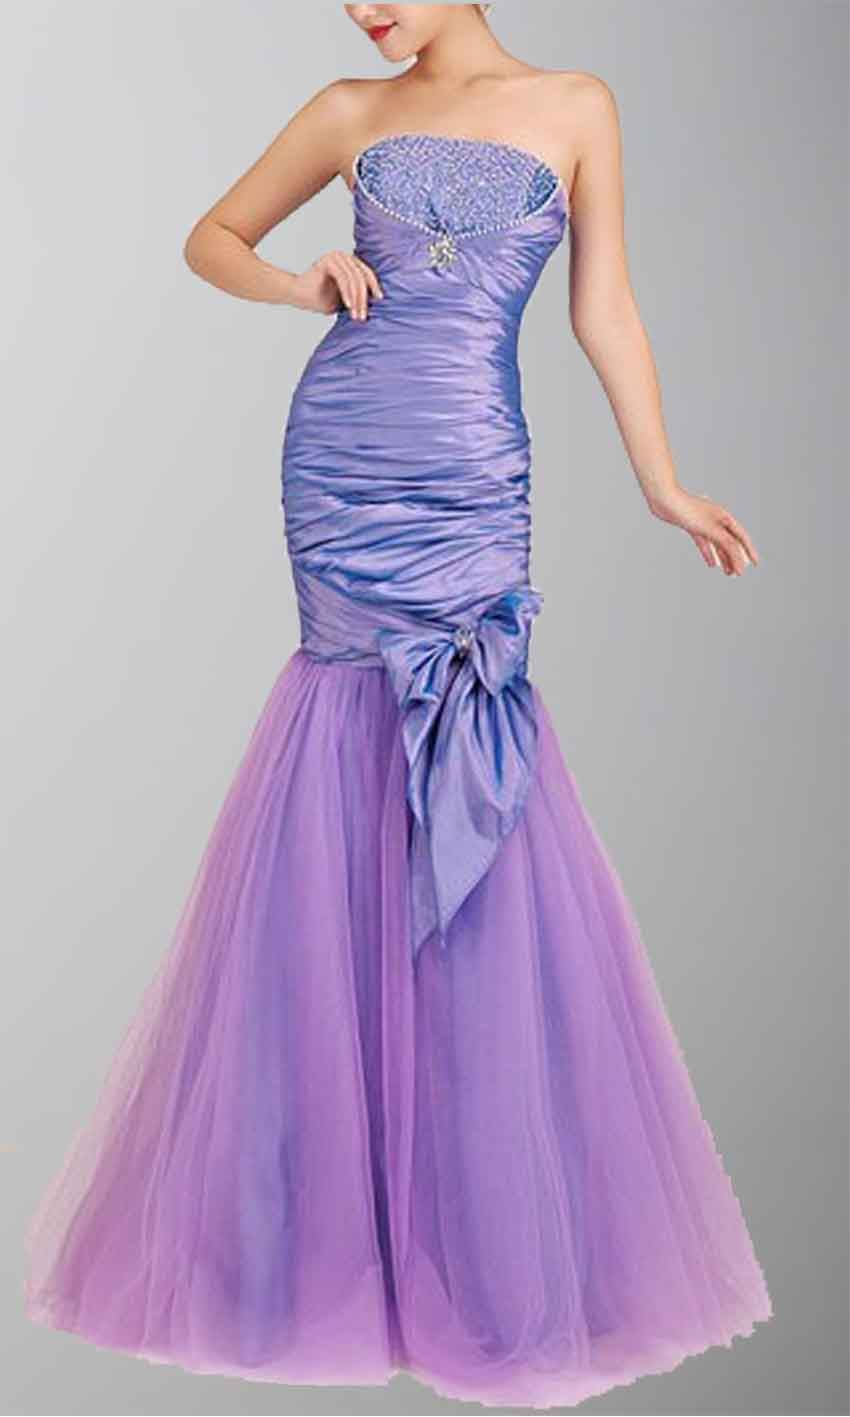 Purple Elegant Beaded Mermaid Lace-up Back Evening Dress KSP025 [KSP025] - £108.00 : Cheap Prom Dresses Uk, Bridesmaid Dresses, 2014 Prom & Evening Dresses, Look for cheap elegant prom dresses 2014, cocktail gowns, or dresses for special occasions? kissprom.co.uk offers various bridesmaid dresses, evening dress, free shipping to UK etc.